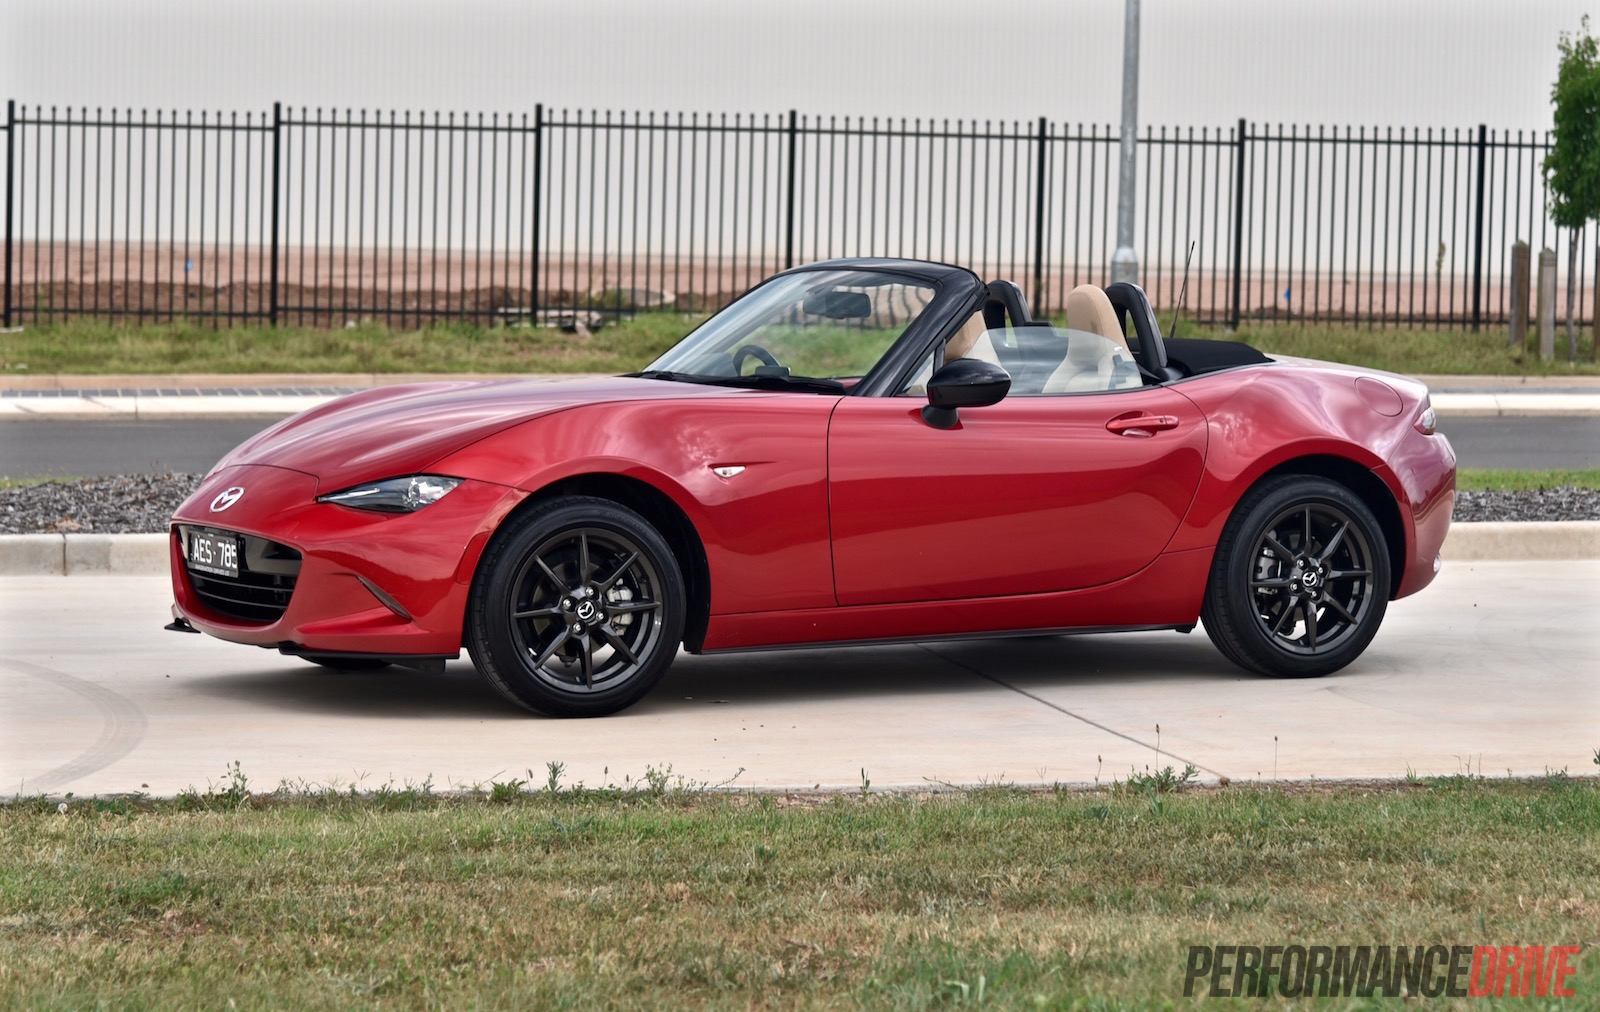 2016 mazda mx 5 gt 1 5l review video performancedrive. Black Bedroom Furniture Sets. Home Design Ideas